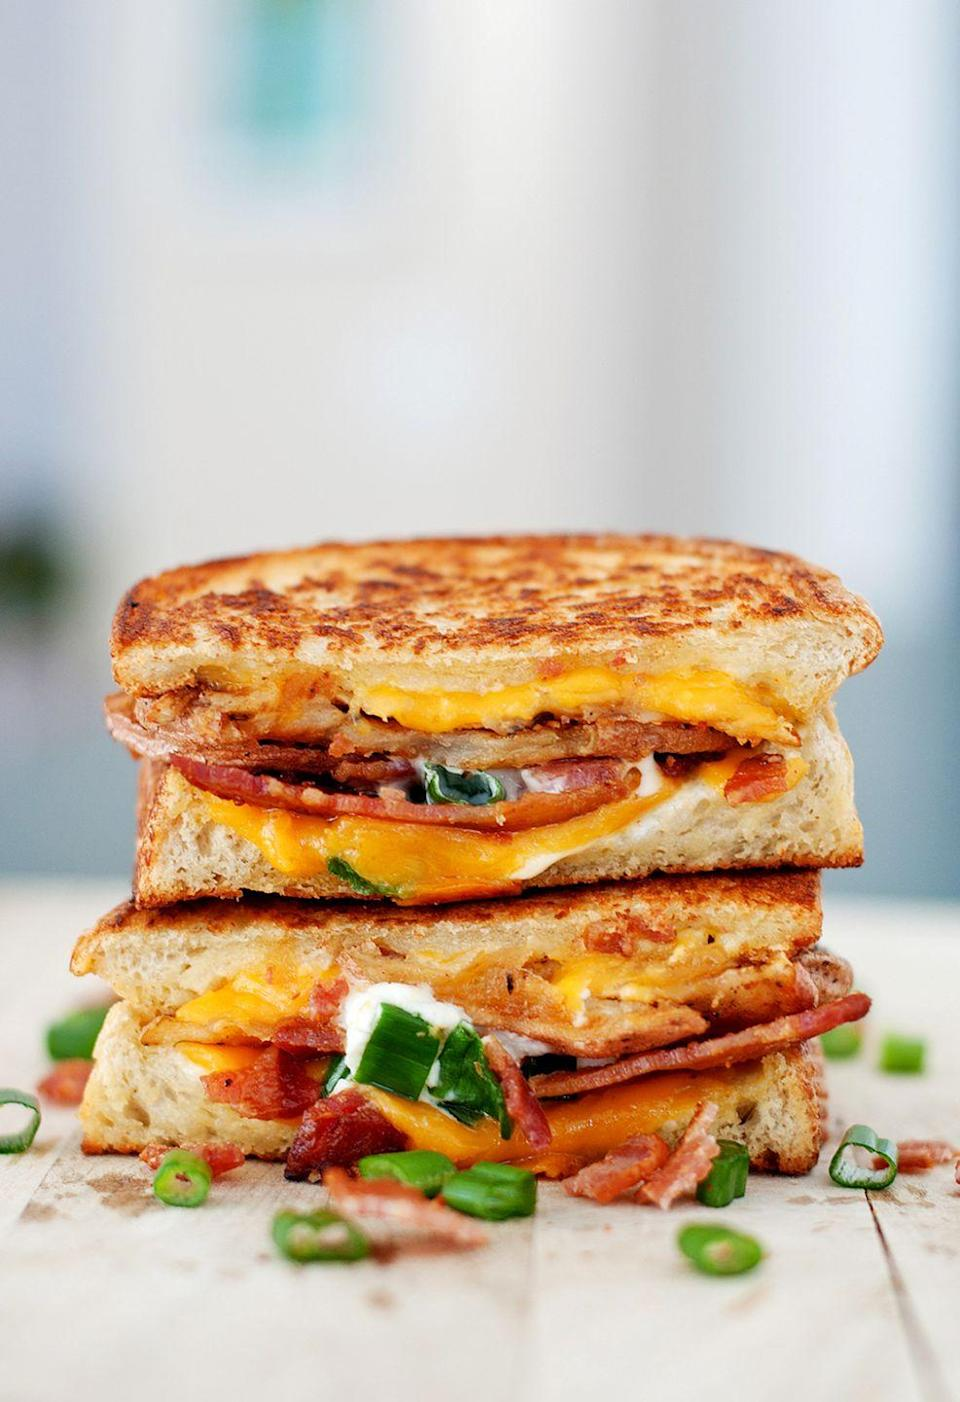 """<p>The epitome of comfort food.</p><p>Get the recipe from <a href=""""http://bsinthekitchen.com/baked-potato-grilled-cheese/"""" rel=""""nofollow noopener"""" target=""""_blank"""" data-ylk=""""slk:BS' In The Kitchen"""" class=""""link rapid-noclick-resp"""">BS' In The Kitchen</a>.</p>"""